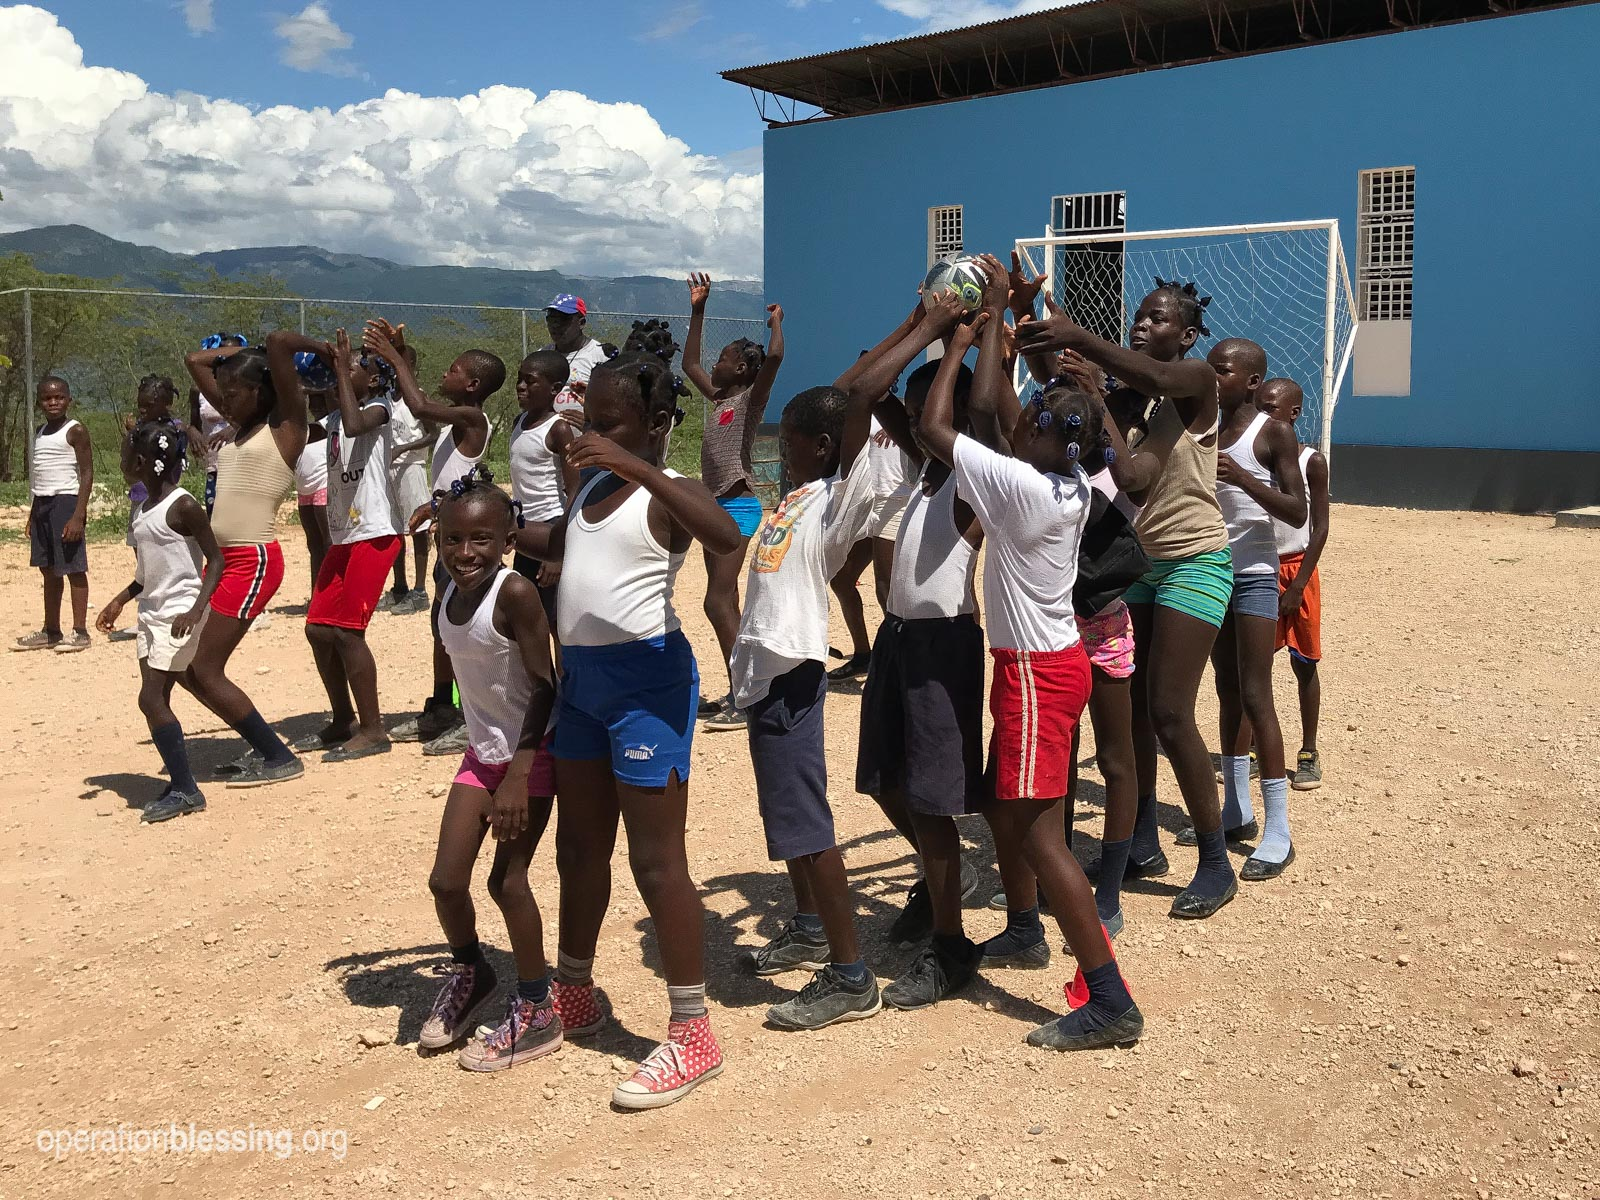 Kids in Haiti have fun during physical education class at OBI's ENLA school.